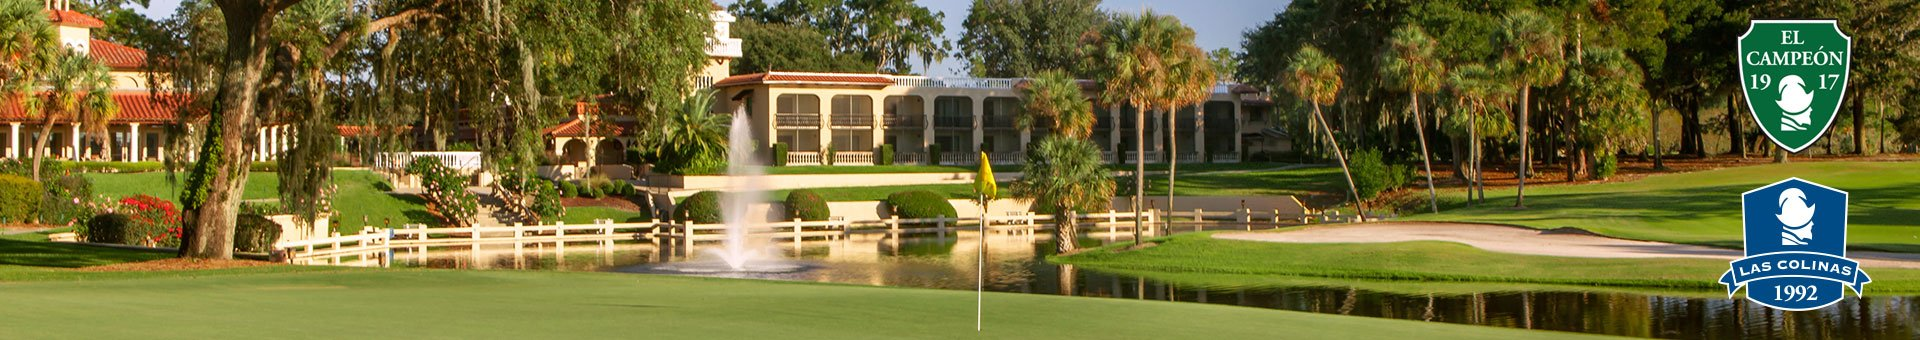 Las Colinas golf course florida, near orlando